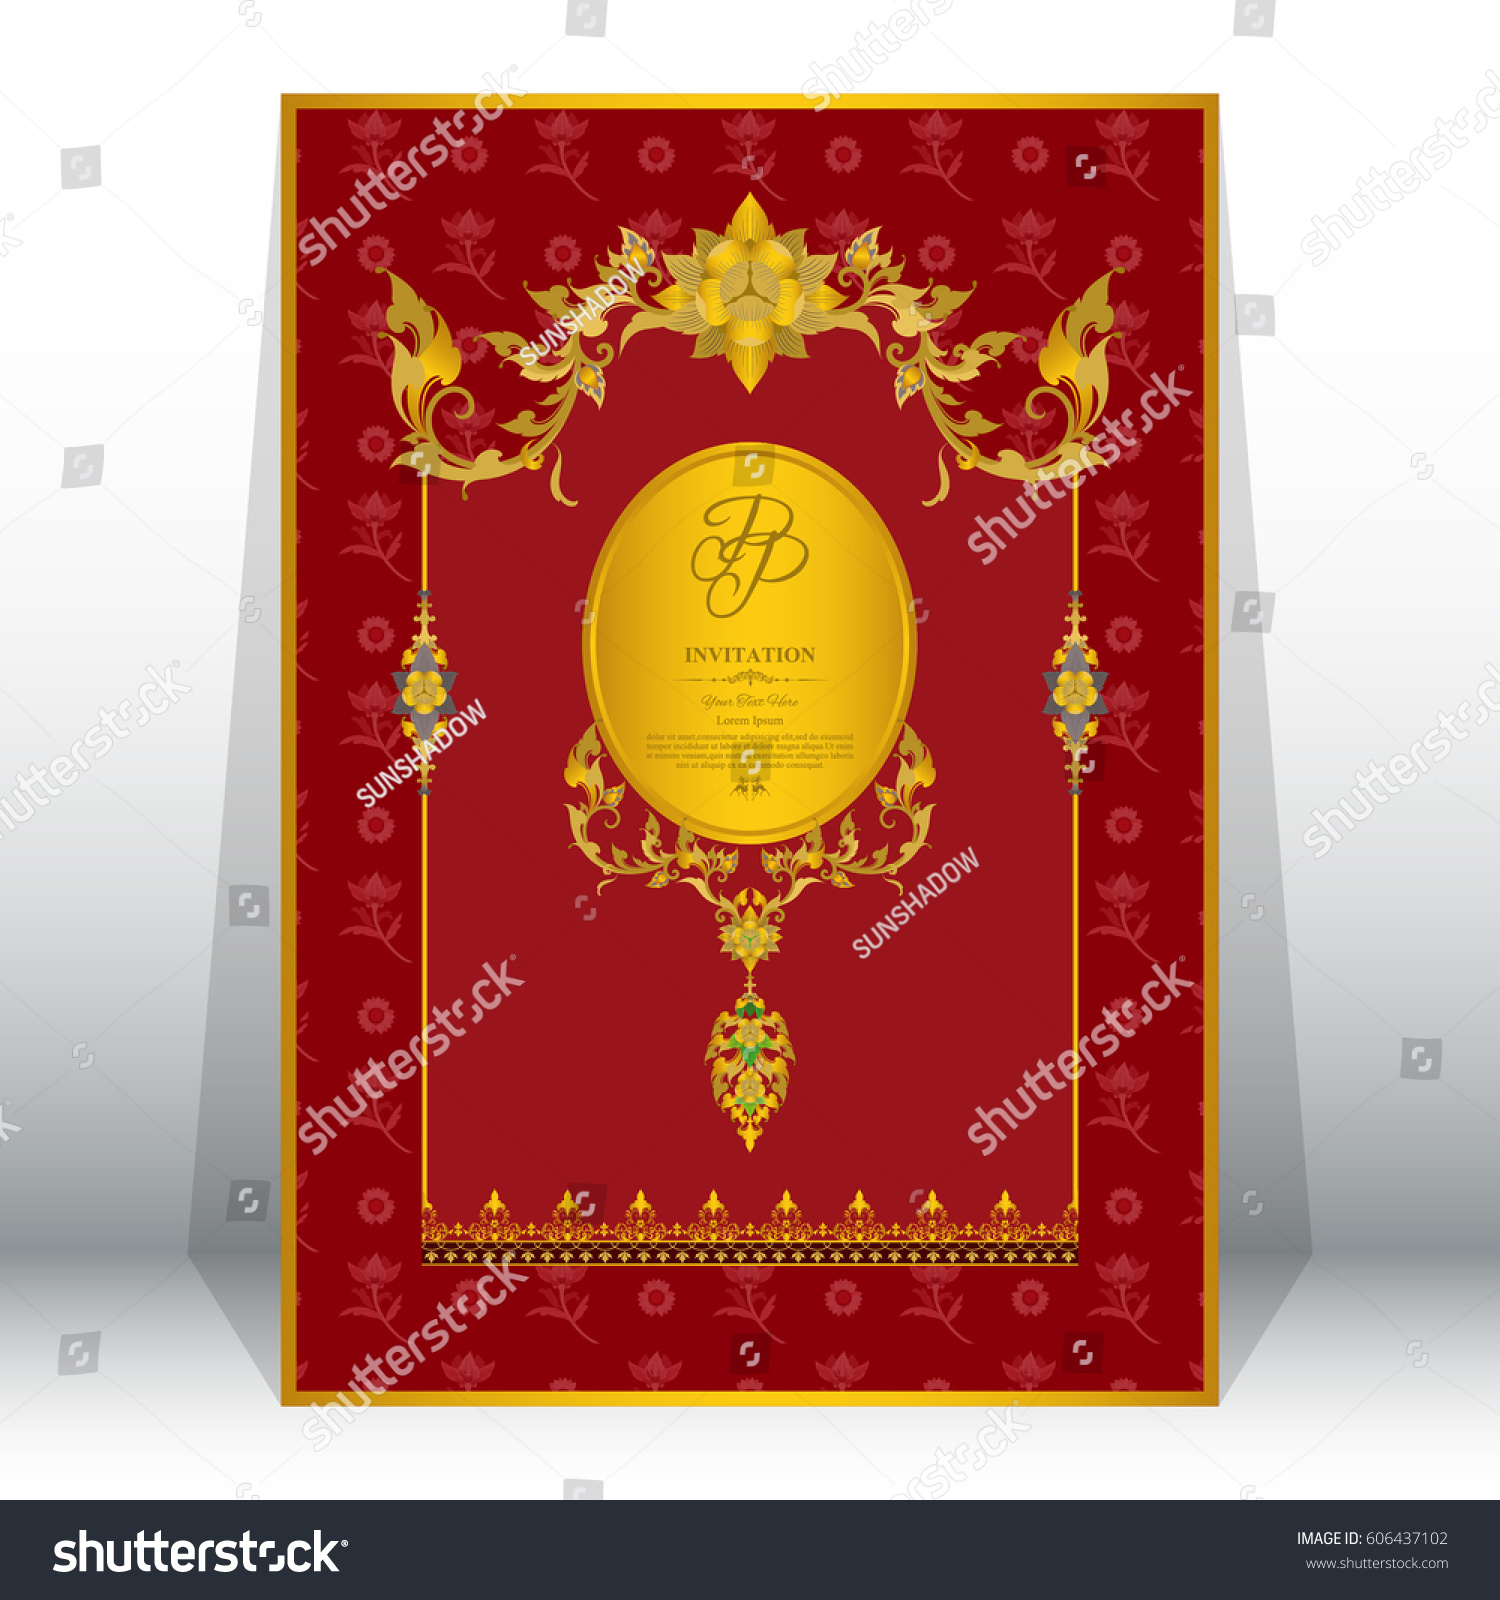 Wedding Invitation Card With Contemporary Asian Design With Stock ...